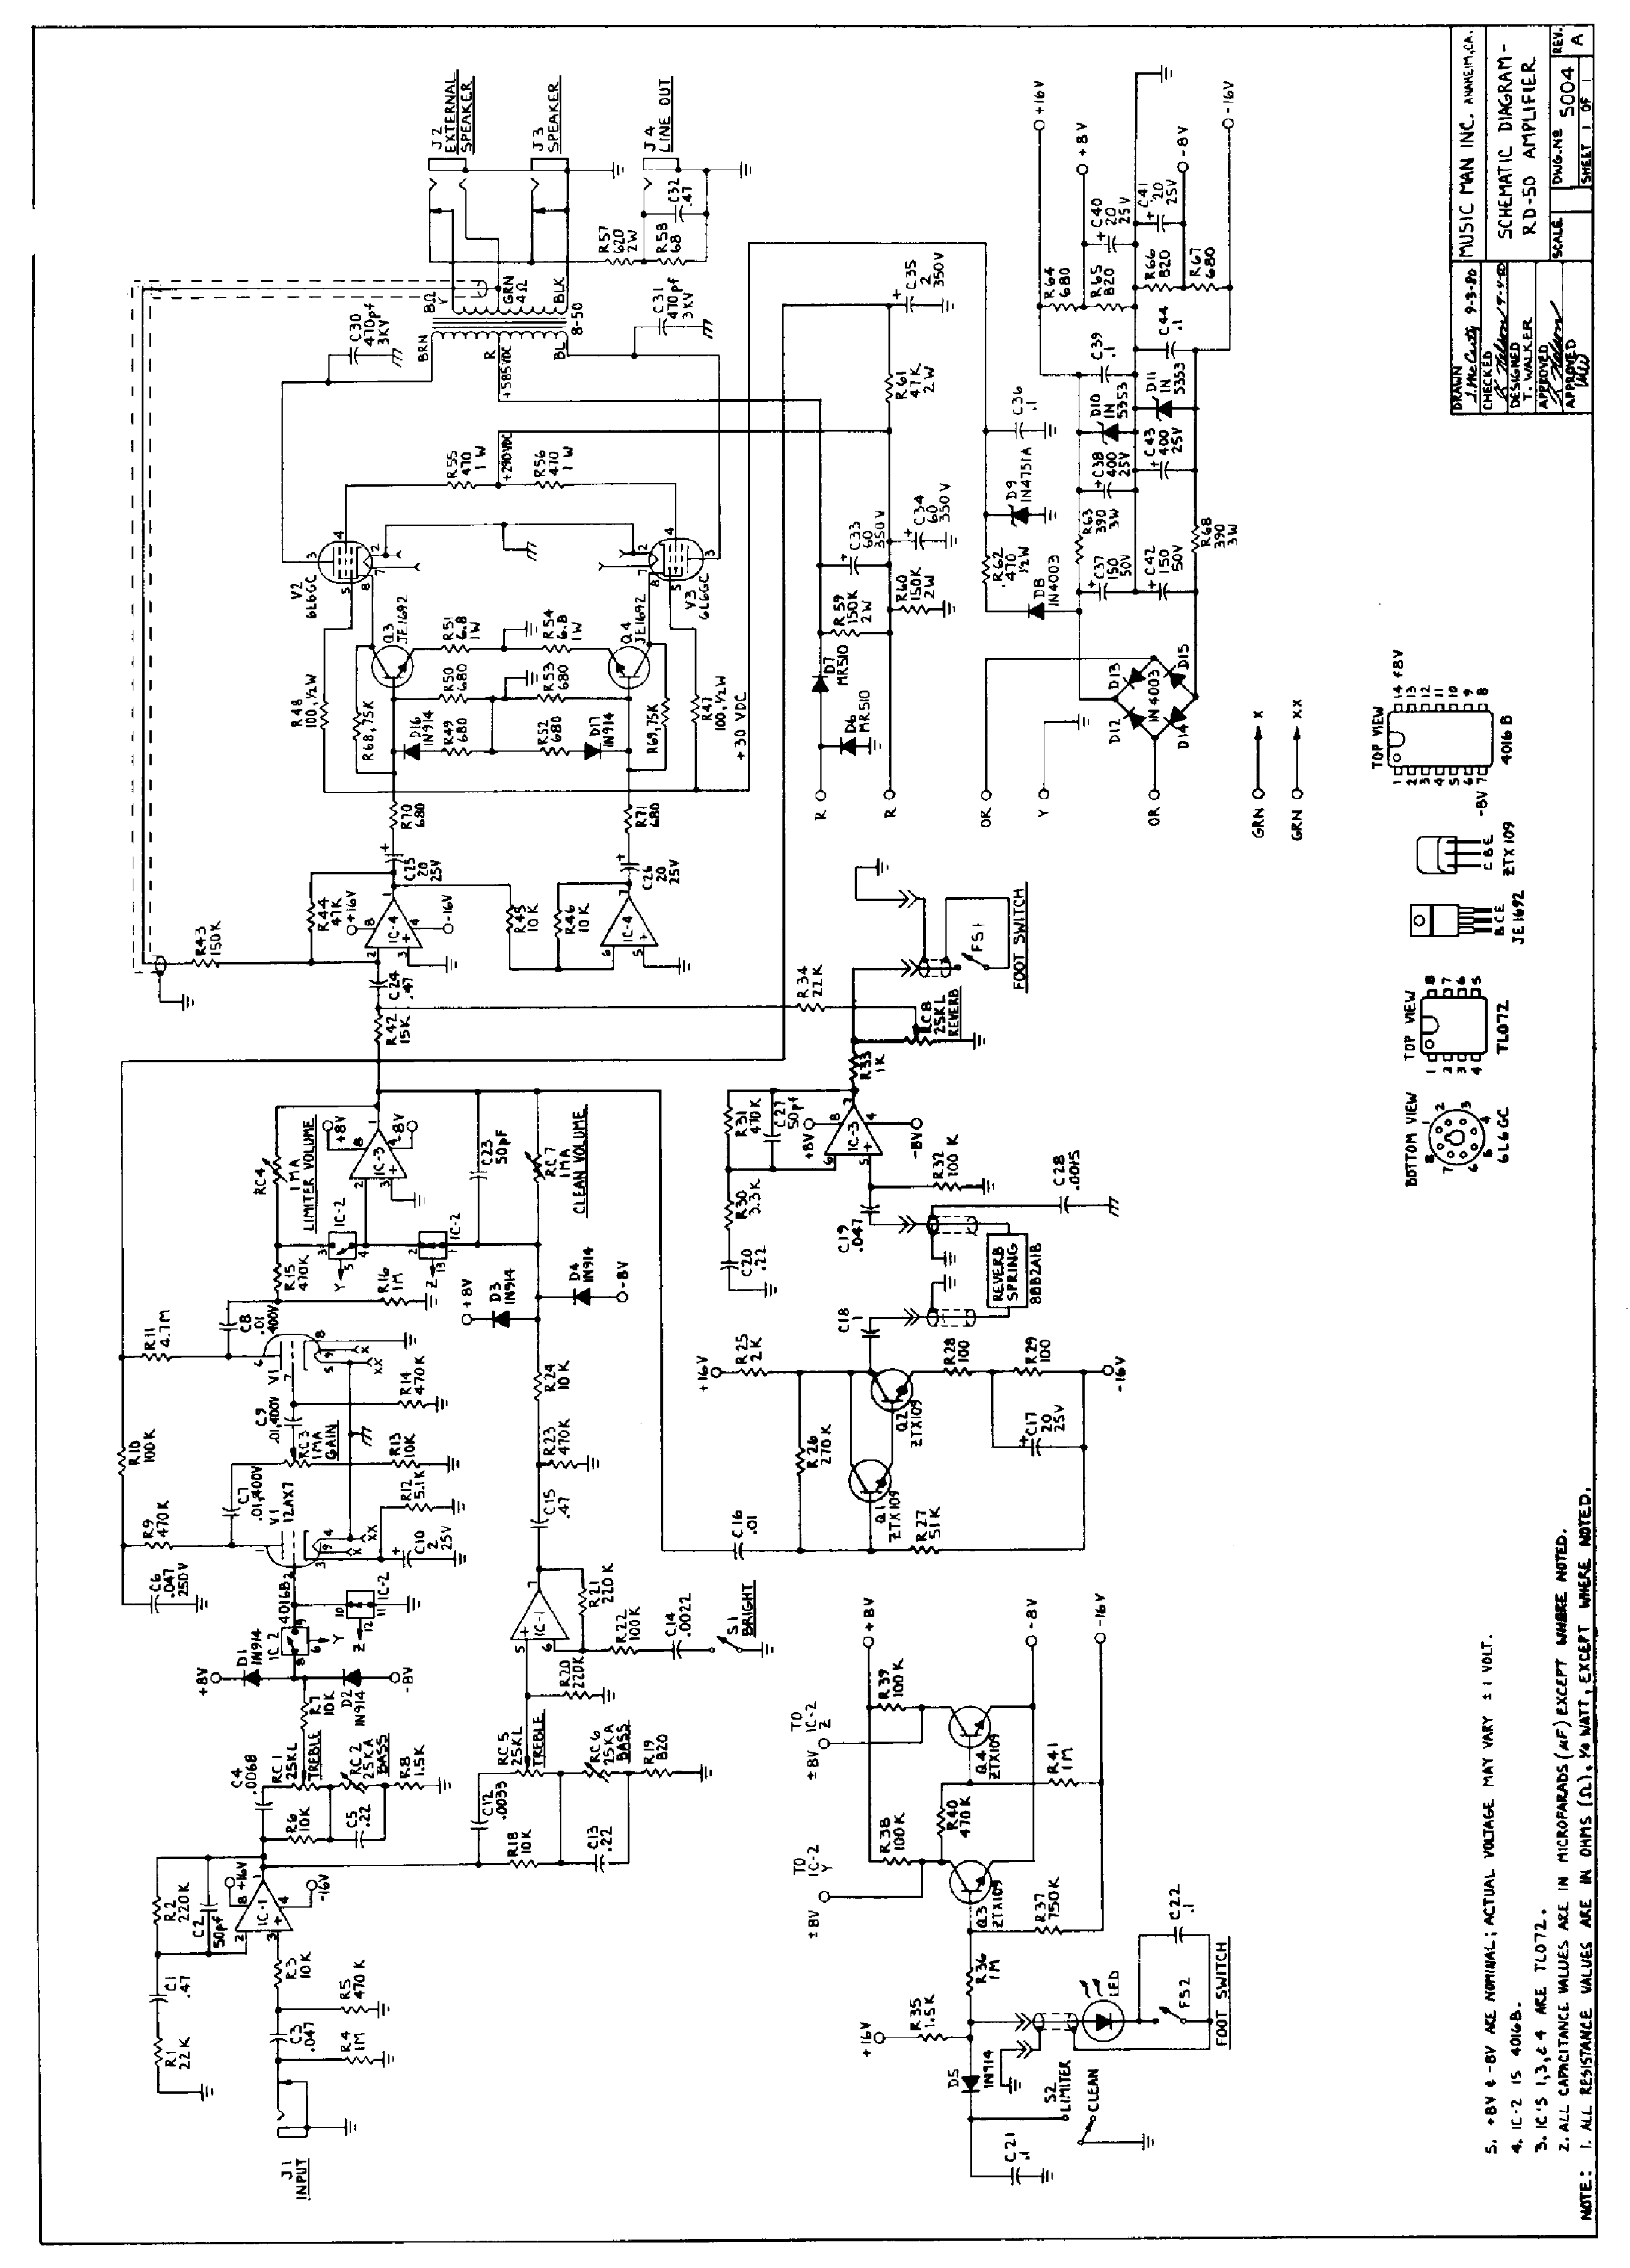 schematic diagram of boss bf 2 flanger pedal fx circuits guitar pedals electronics audio amplifier [ 2750 x 3826 Pixel ]